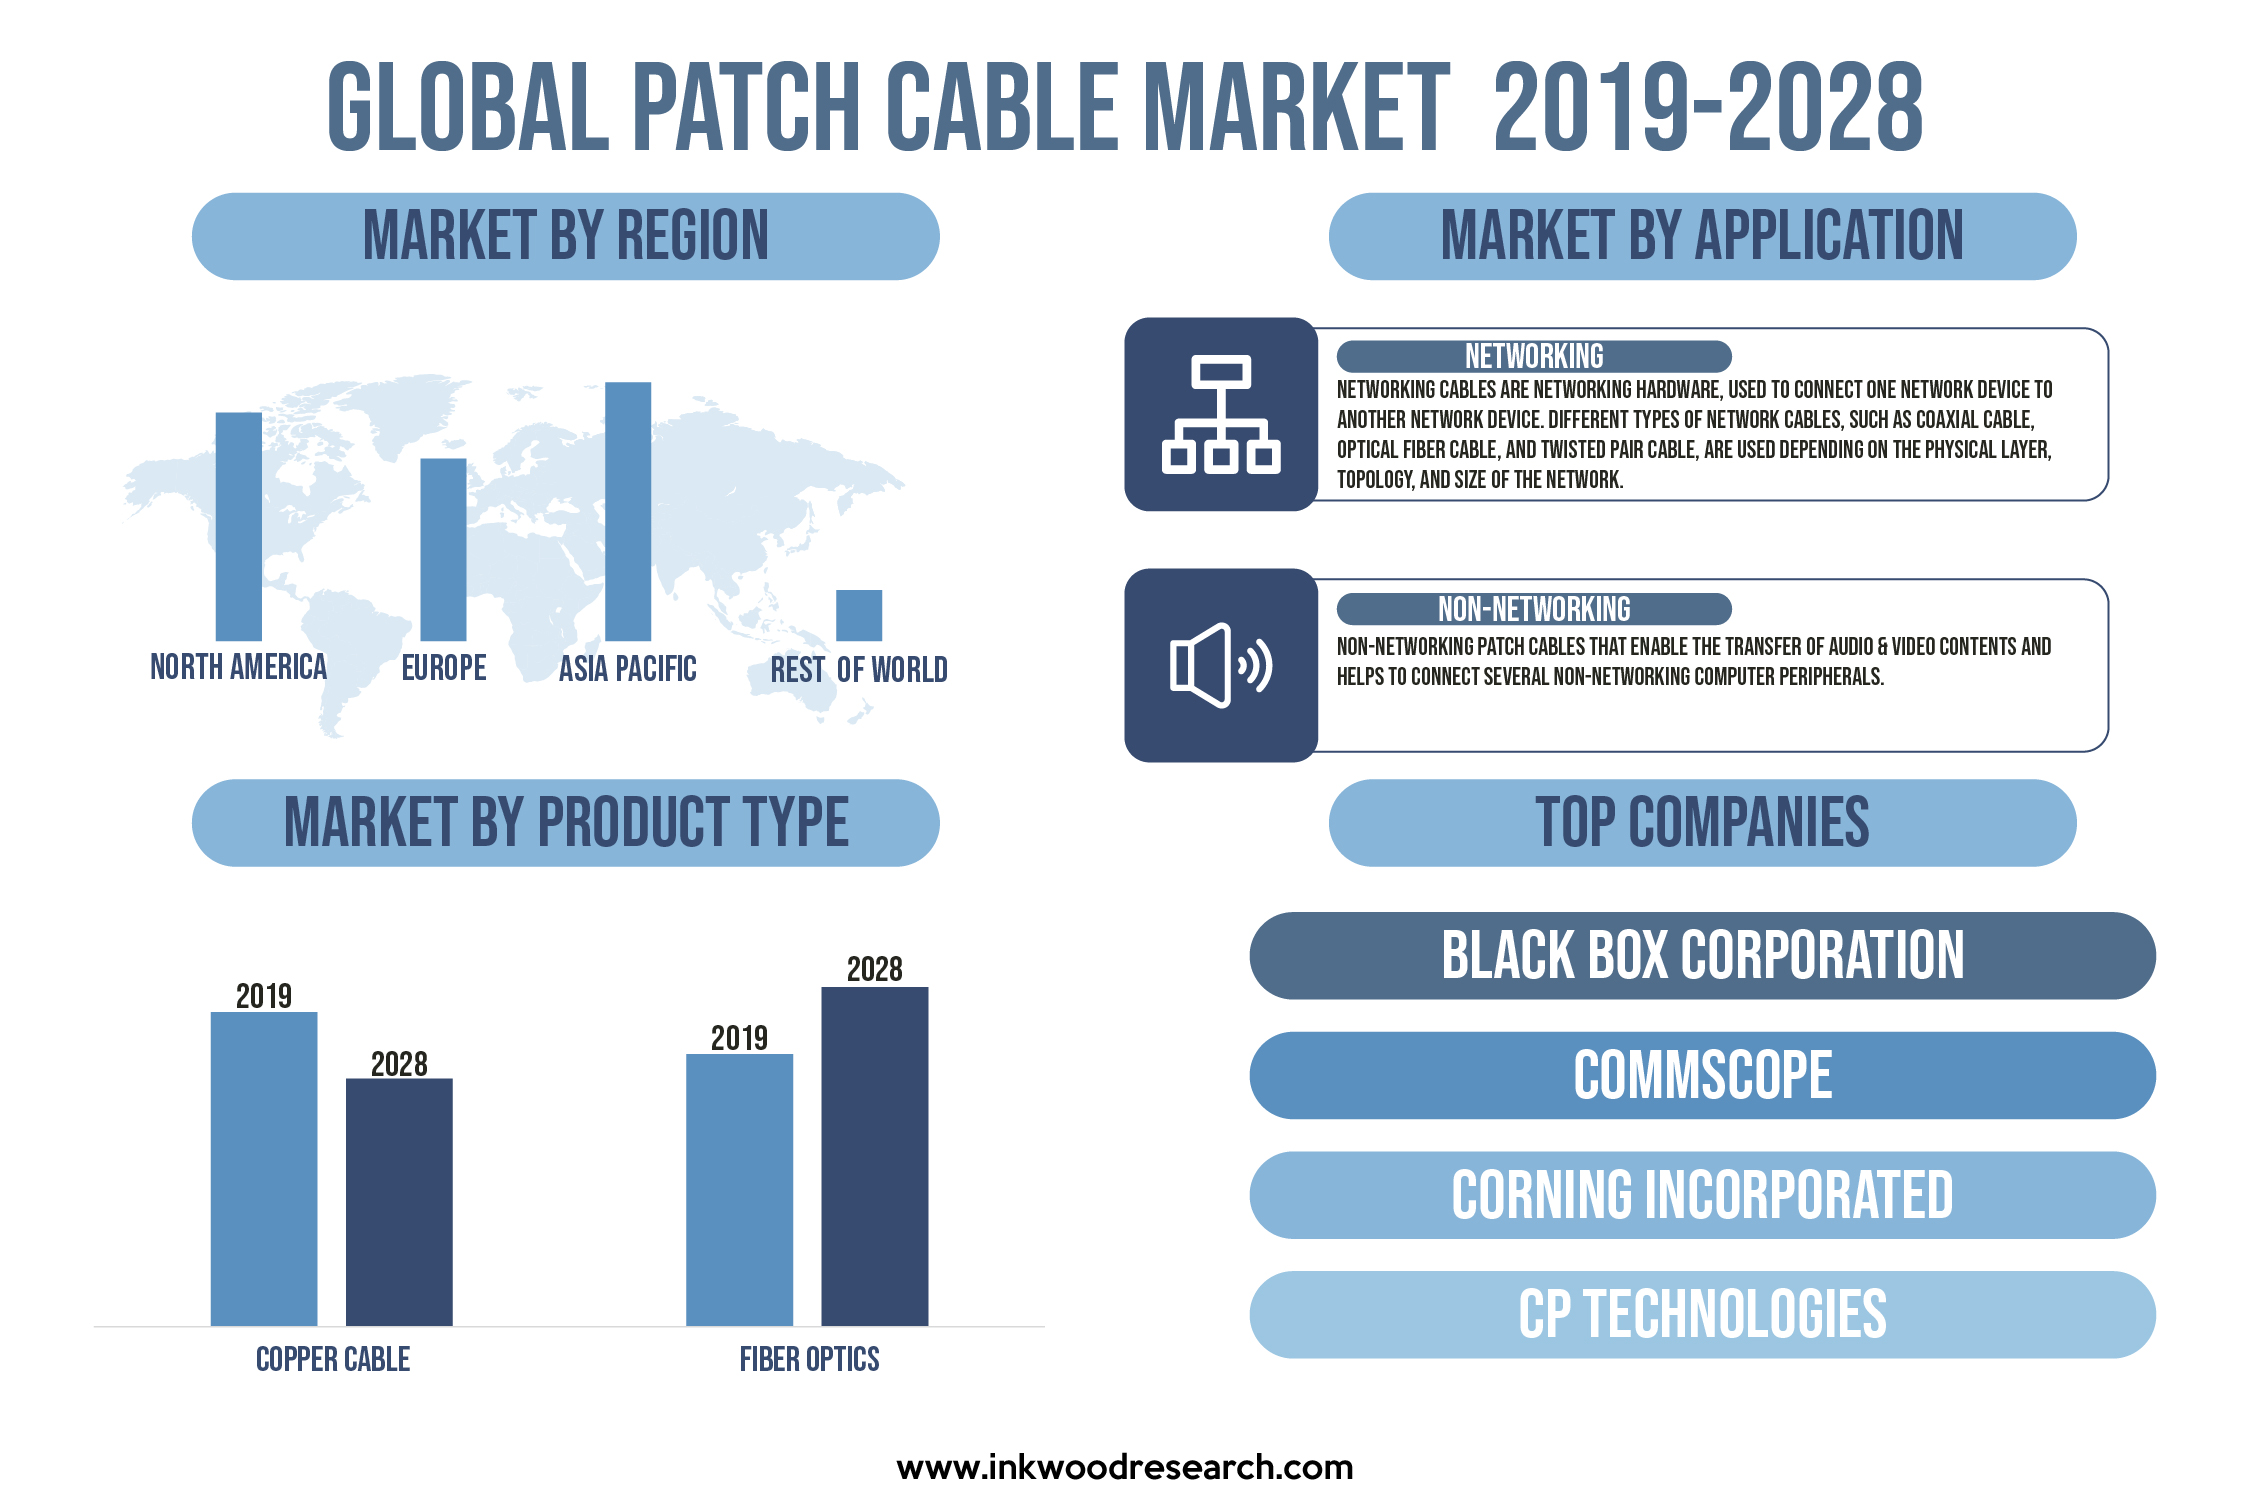 Demand for High-Speed Devices is propelling Growth in the Global Patch Cable Market